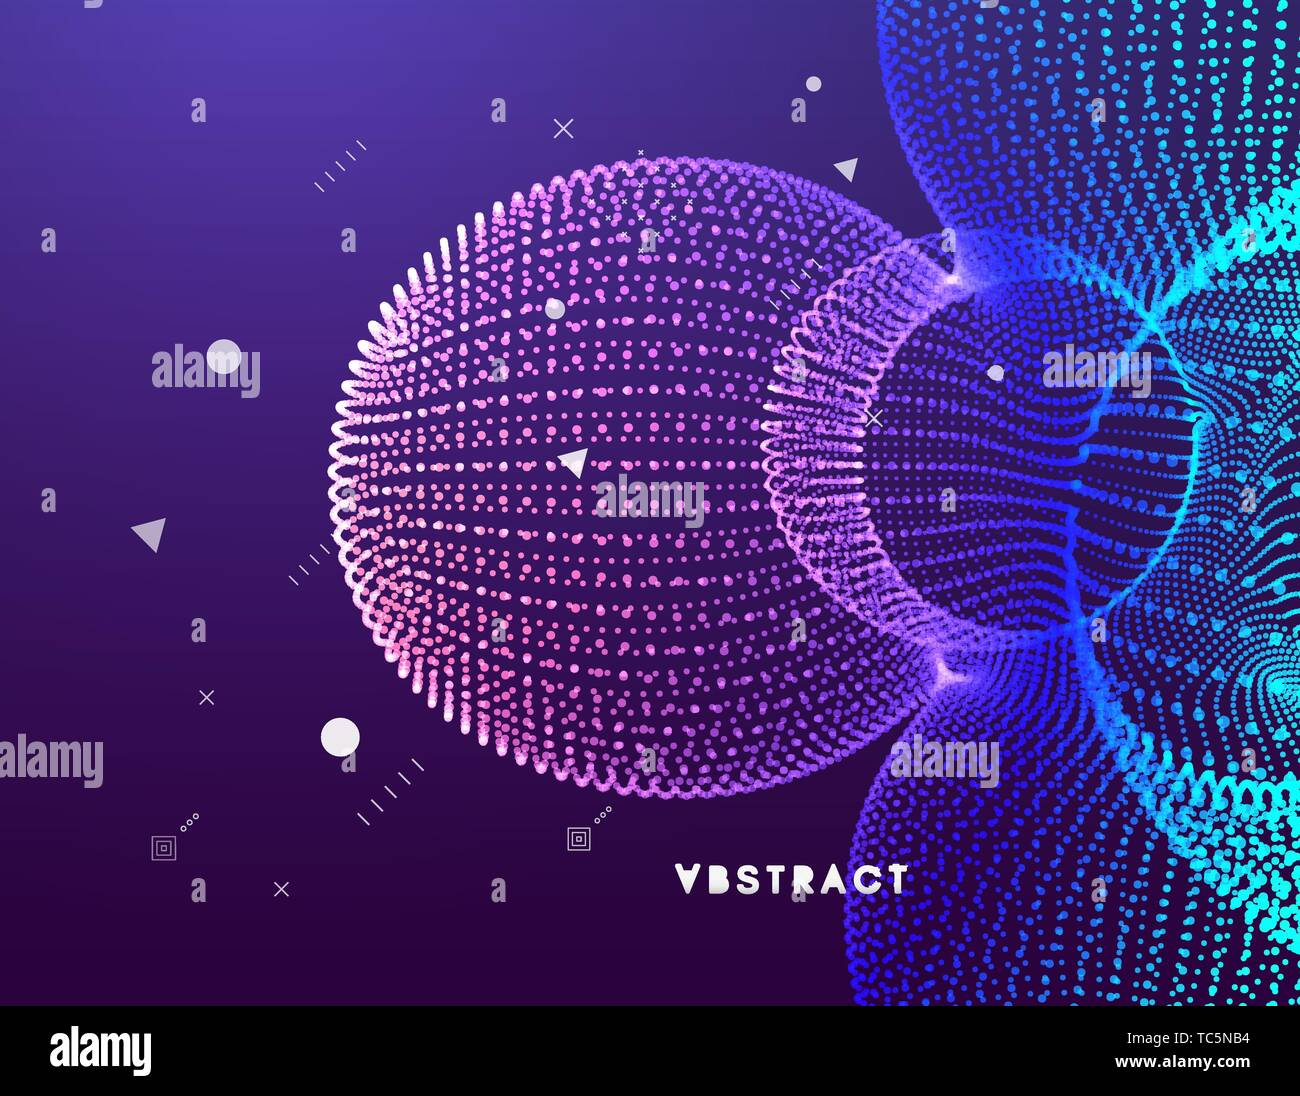 3D abstract molecular structure. Technology style for science, education, big data, visualization and artificial intelligence. Vector illustration. Stock Vector